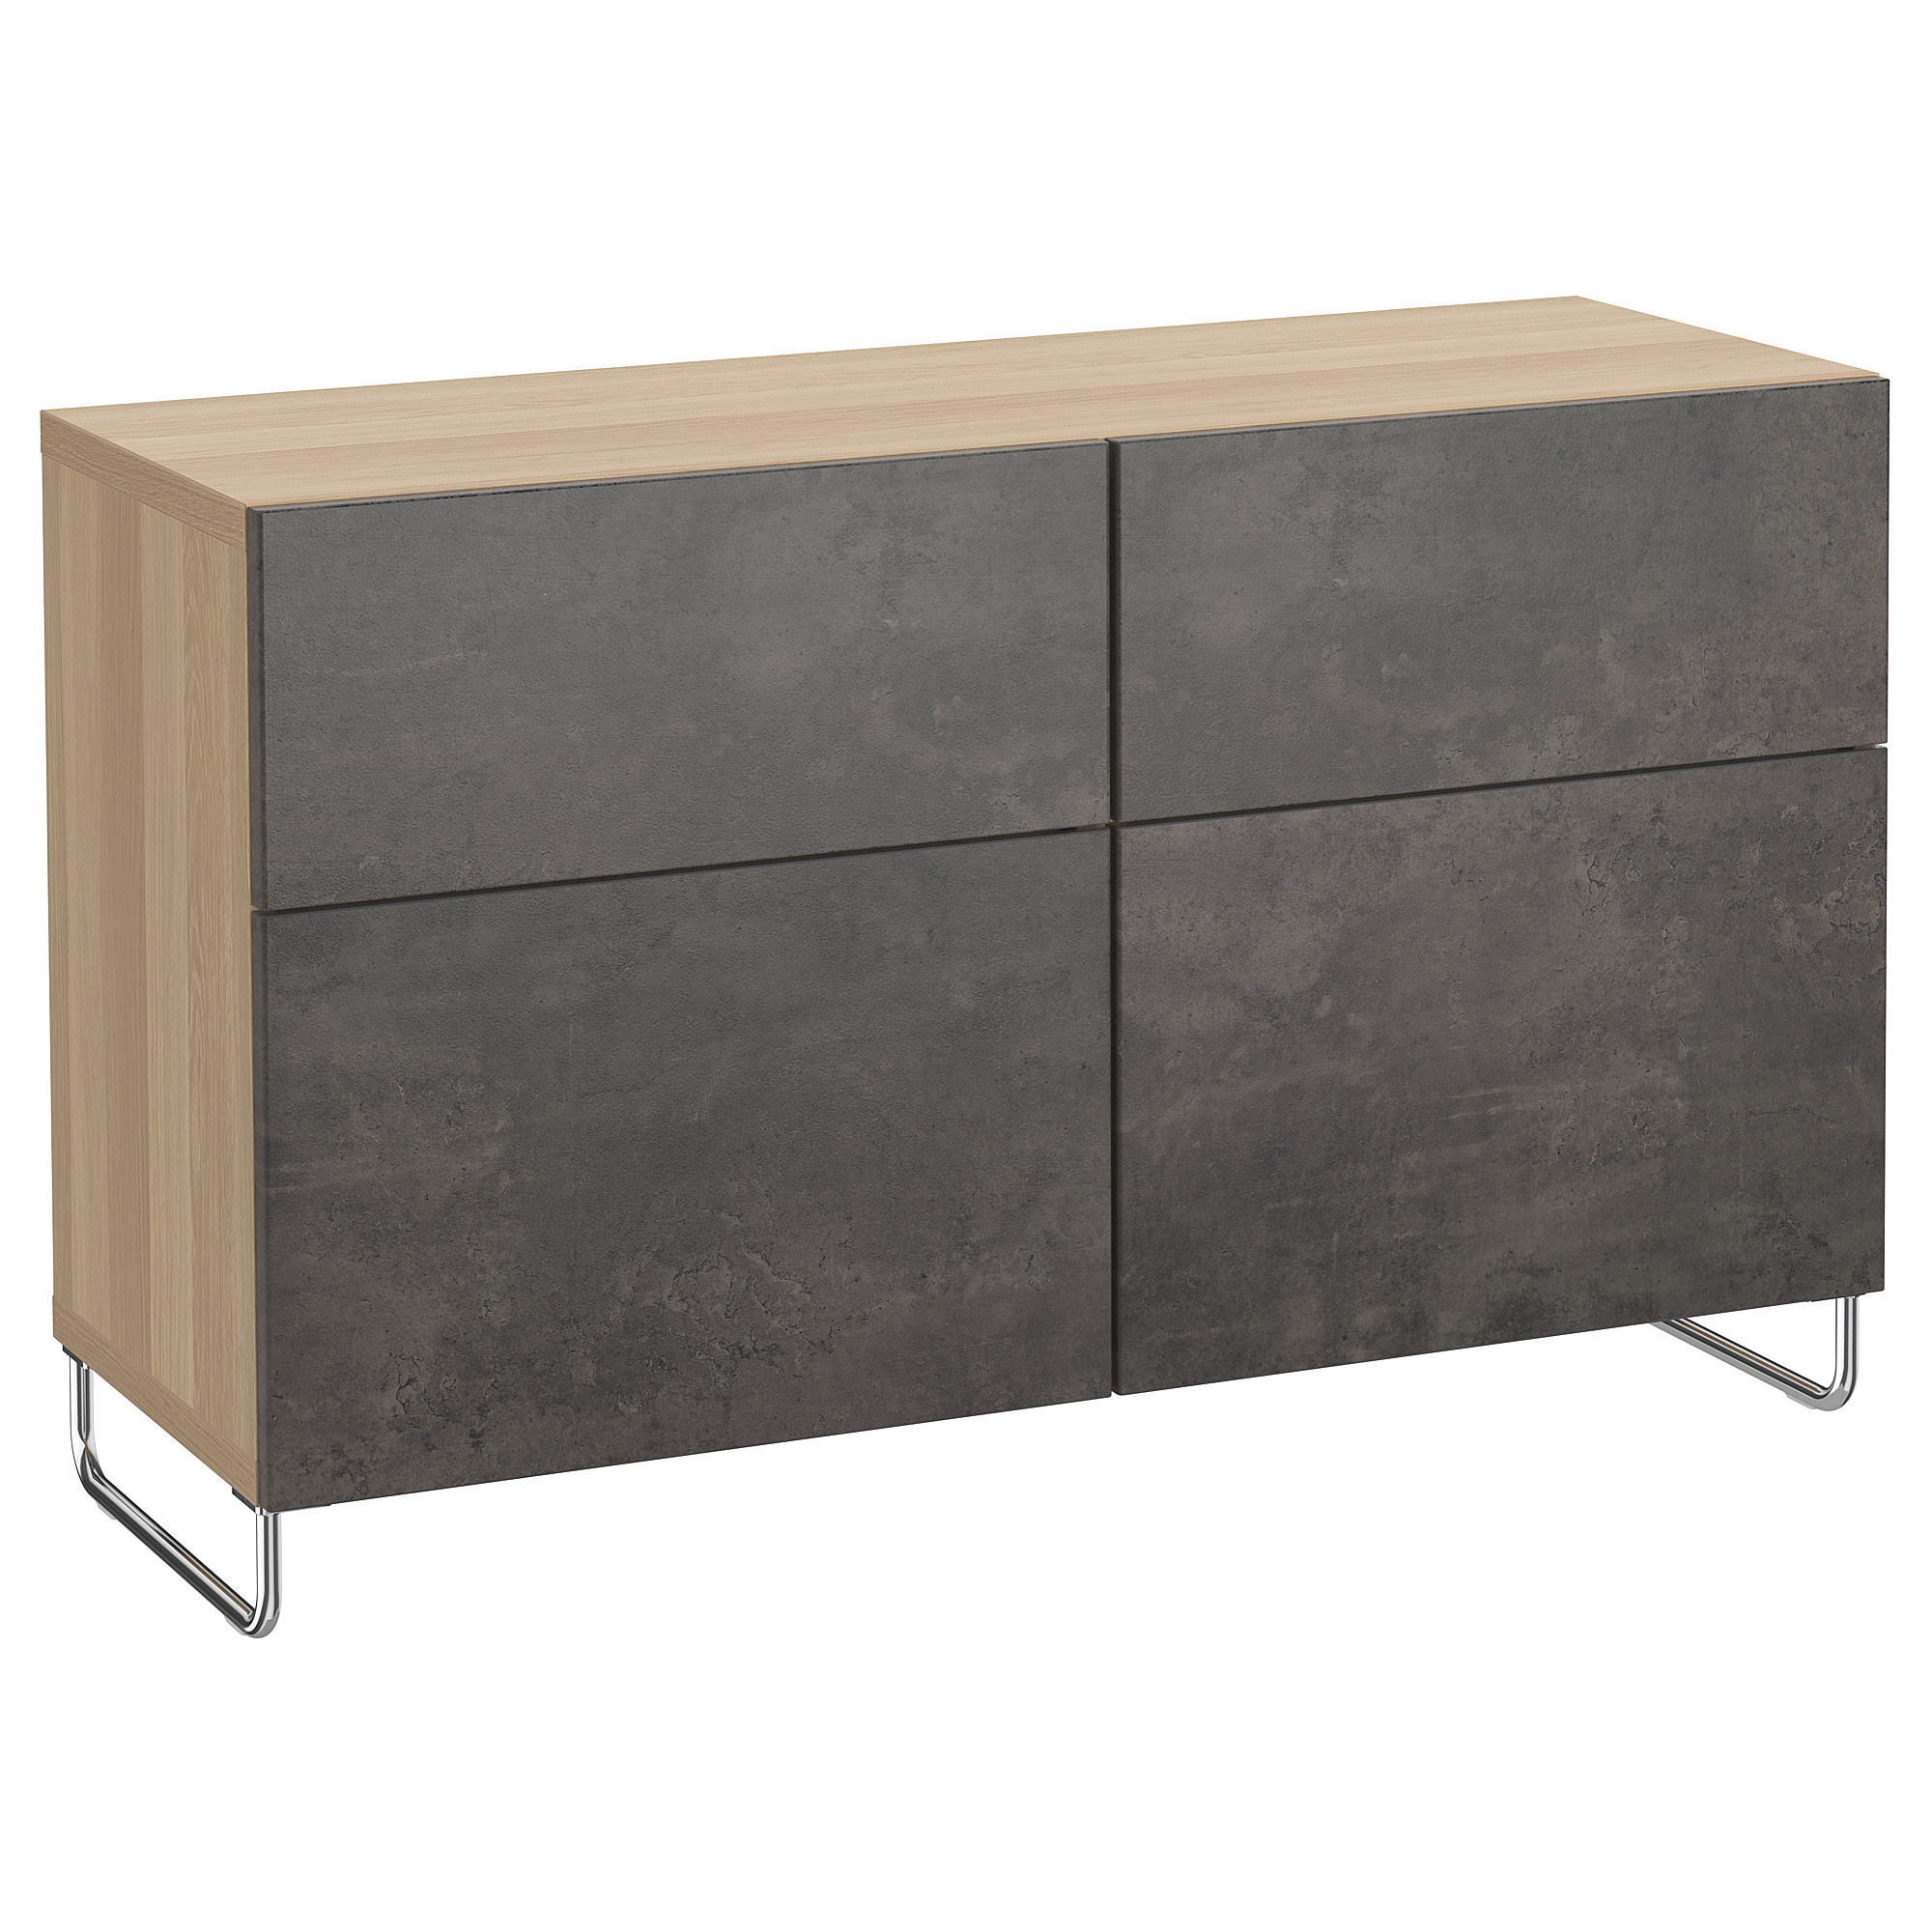 Ikea Lithuania – Shop For Furniture, Lighting, Home Accessories & More Within Preferred 4 Door Wood Squares Sideboards (Gallery 9 of 20)